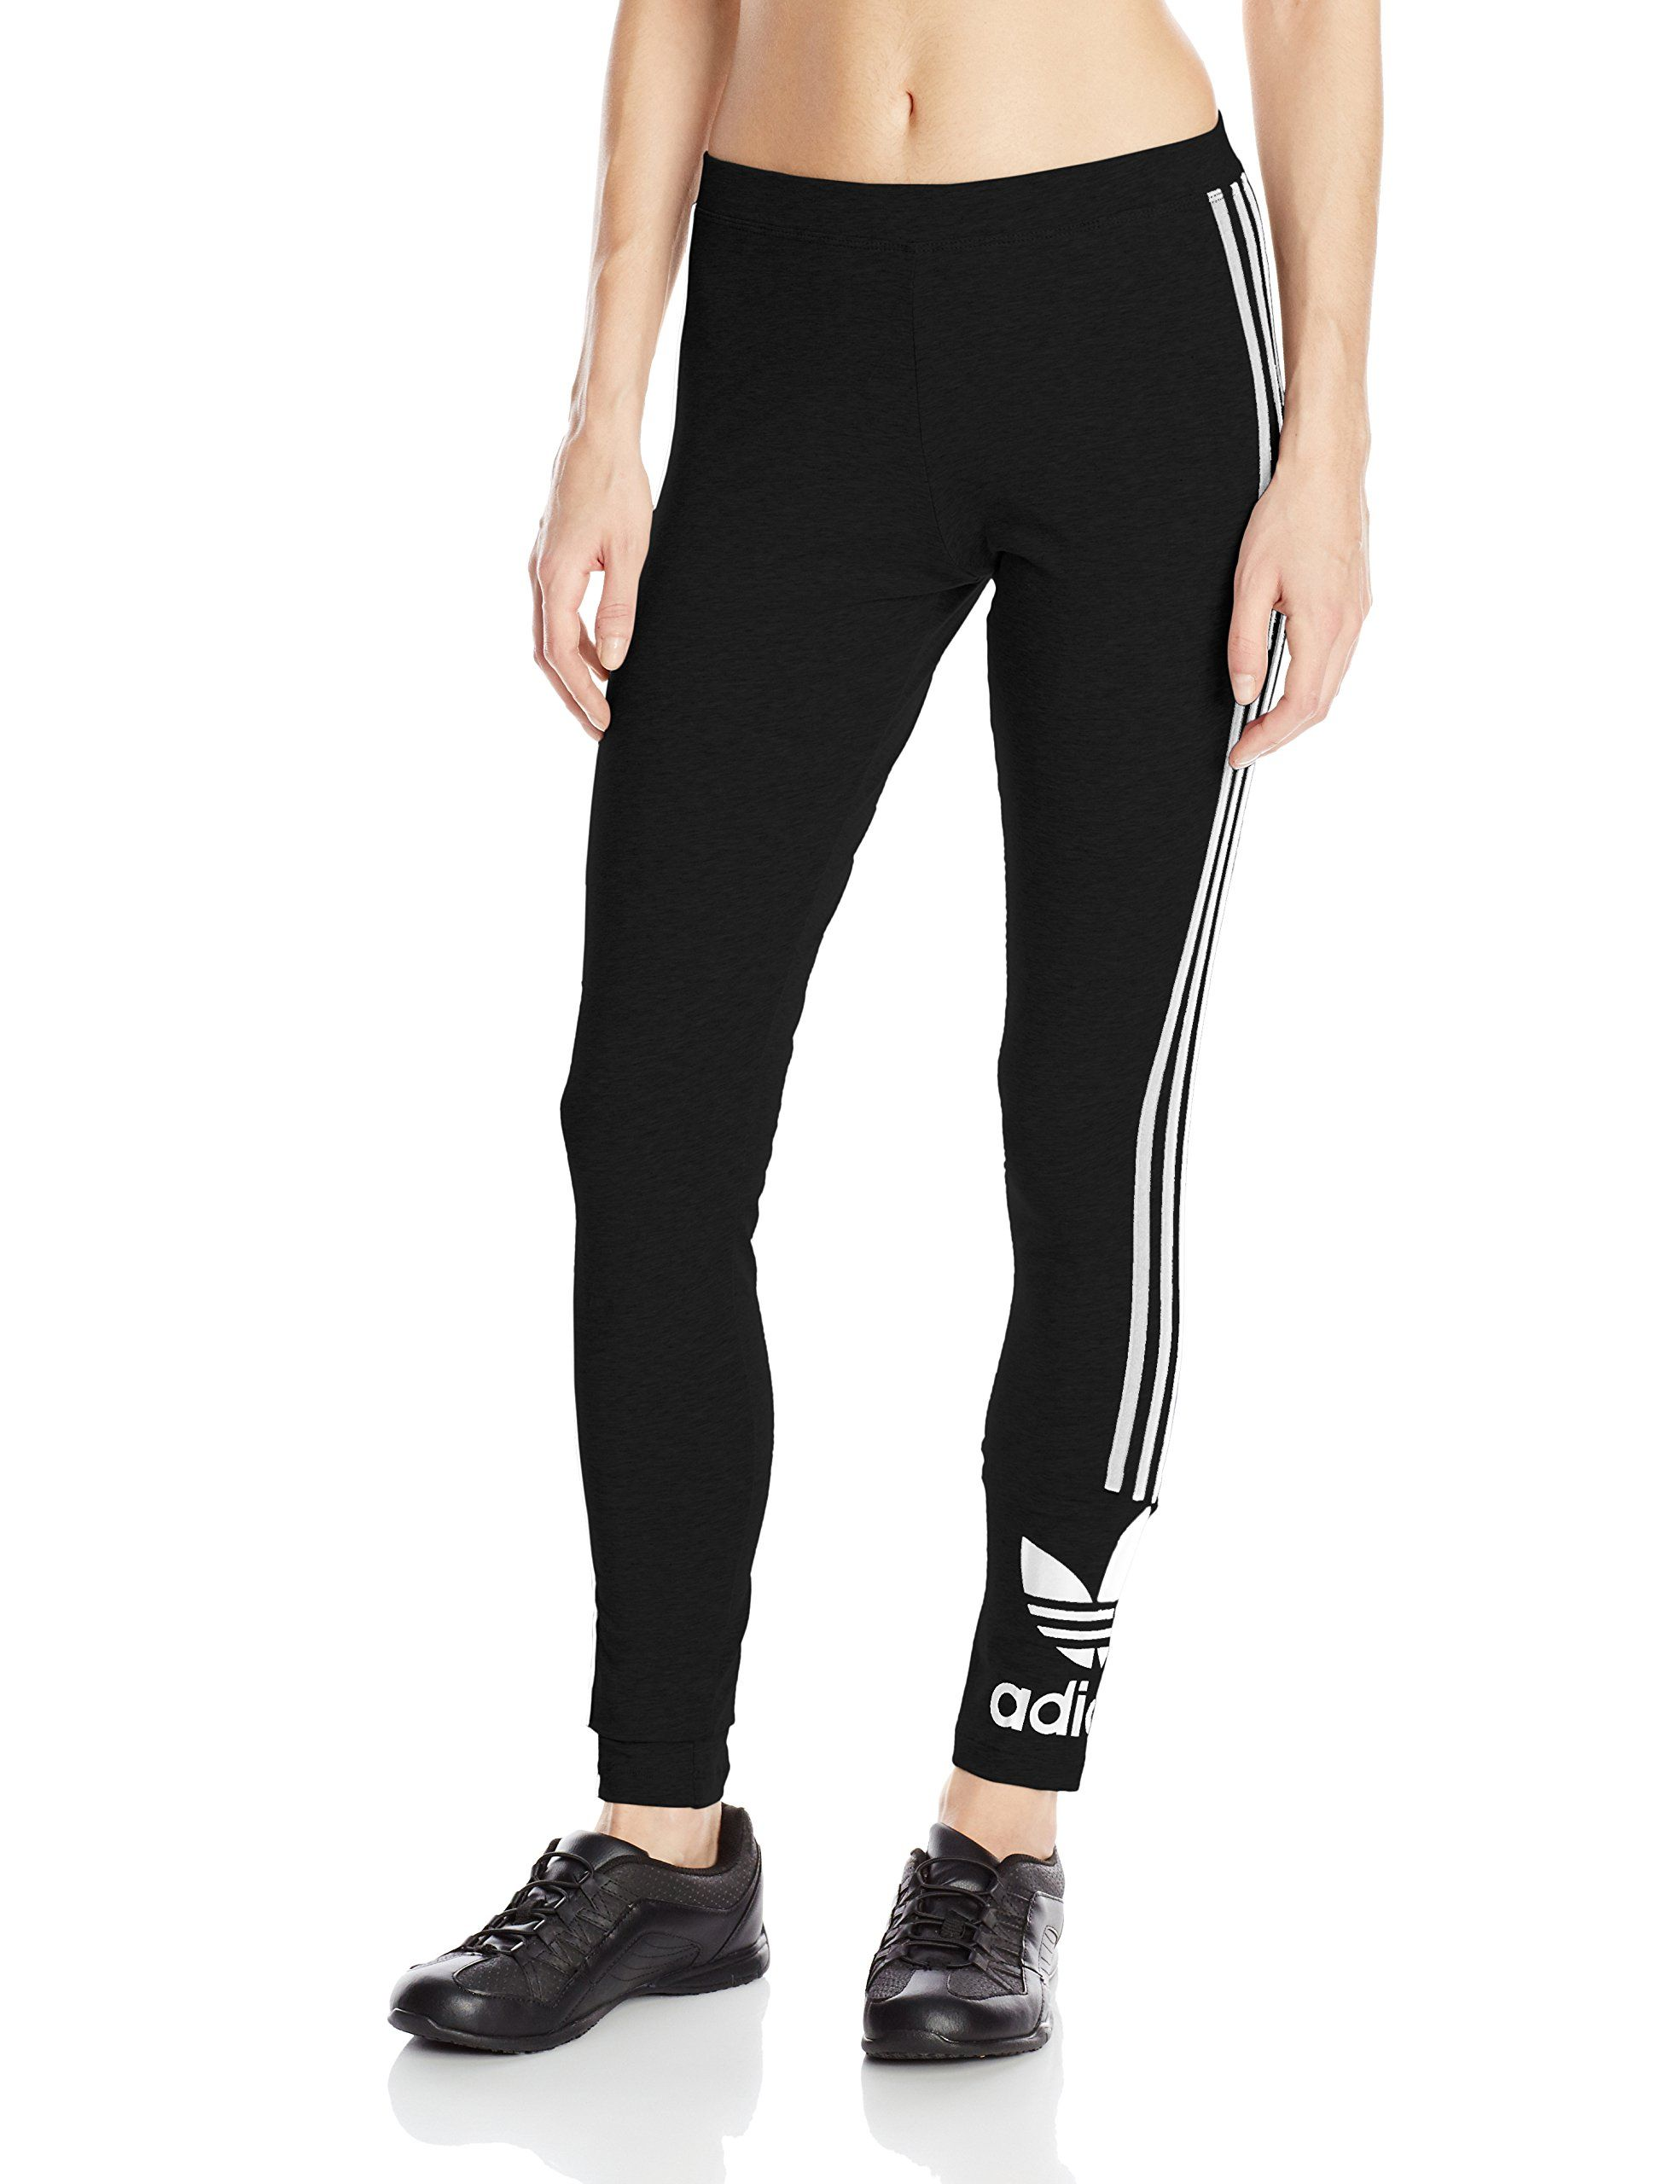 257b20d3138 Amazon.com : adidas Originals Women's Striped Trefoil Graphic Legging :  Sports & Outdoors